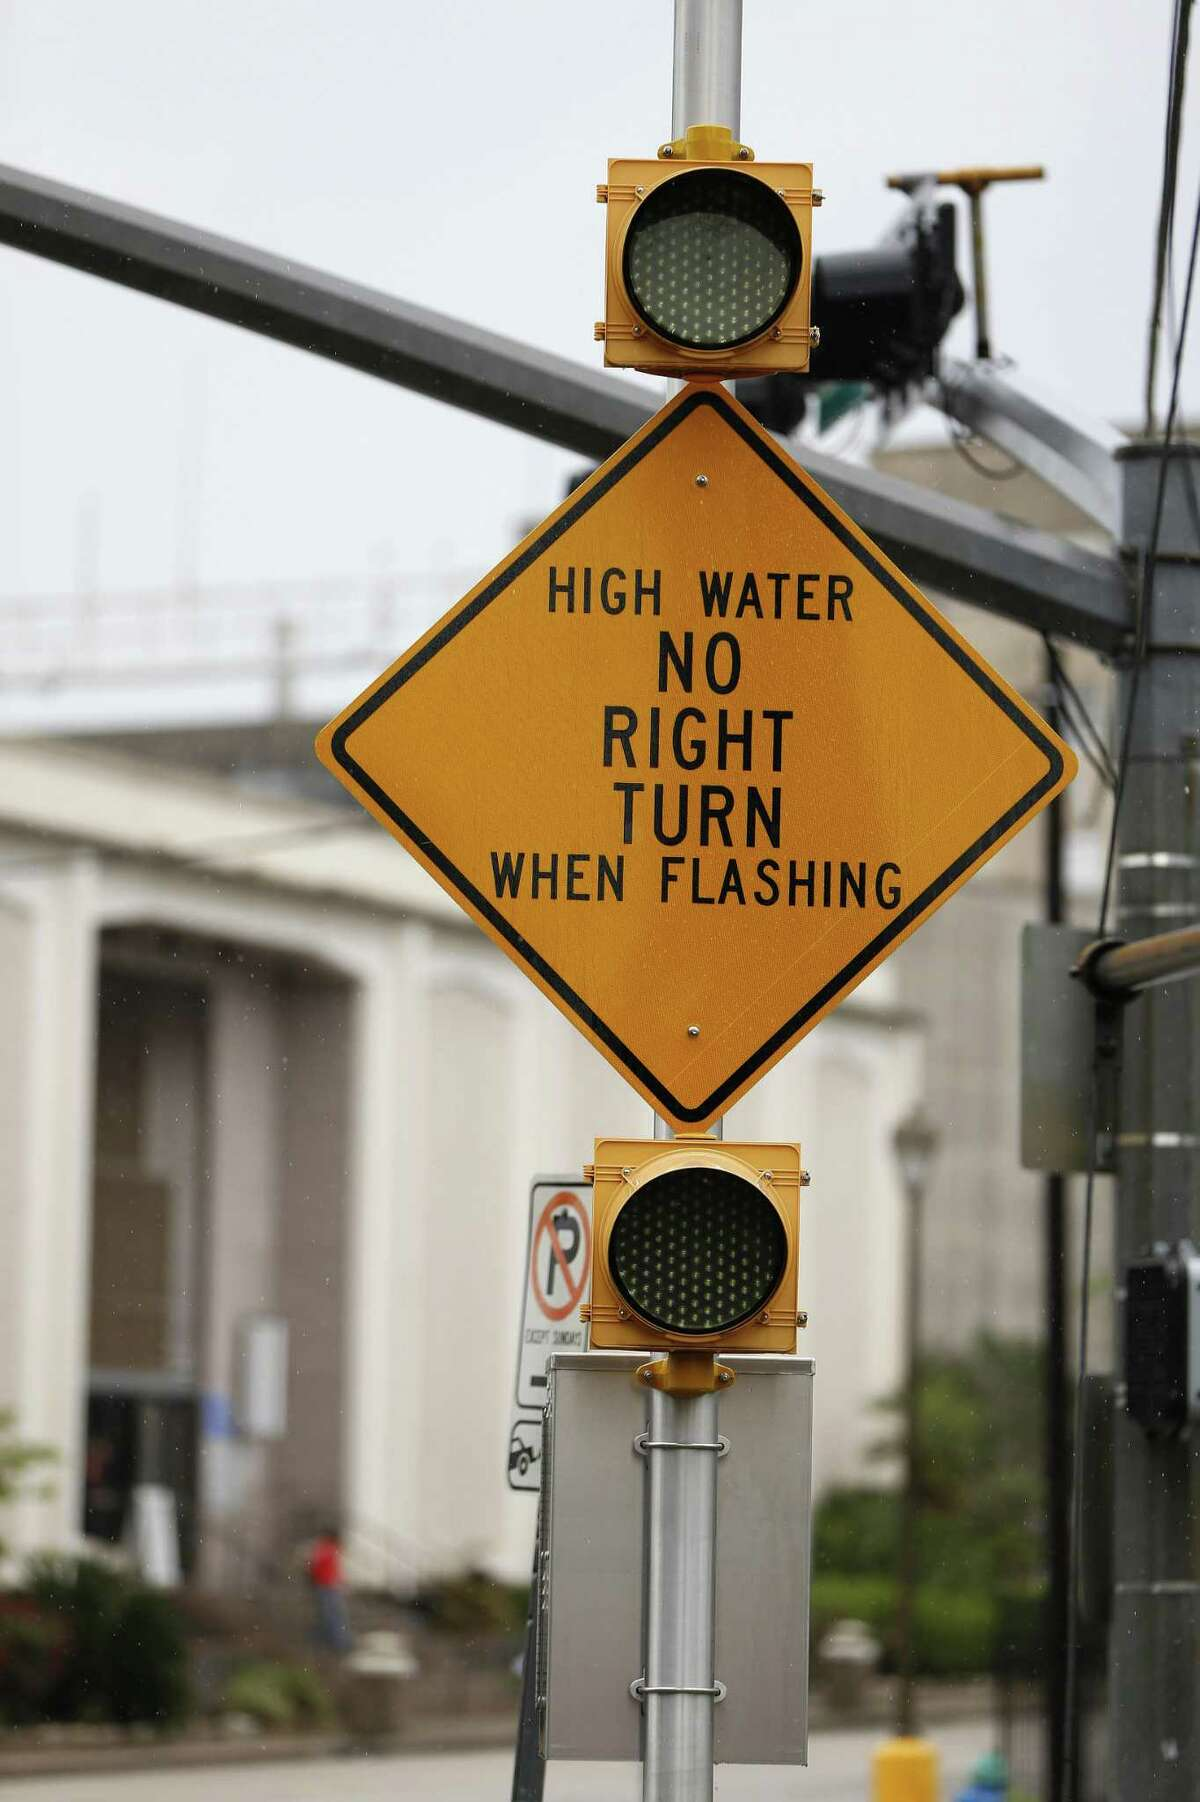 A flooded road warning system sign at Houston Avenue, near Memorial Drive, this one warns drivers not to turn right when flashing to avoid going into flood waters in the underpass on April 20, 2016.Scroll through to see the intersections targeted for flood warning signs